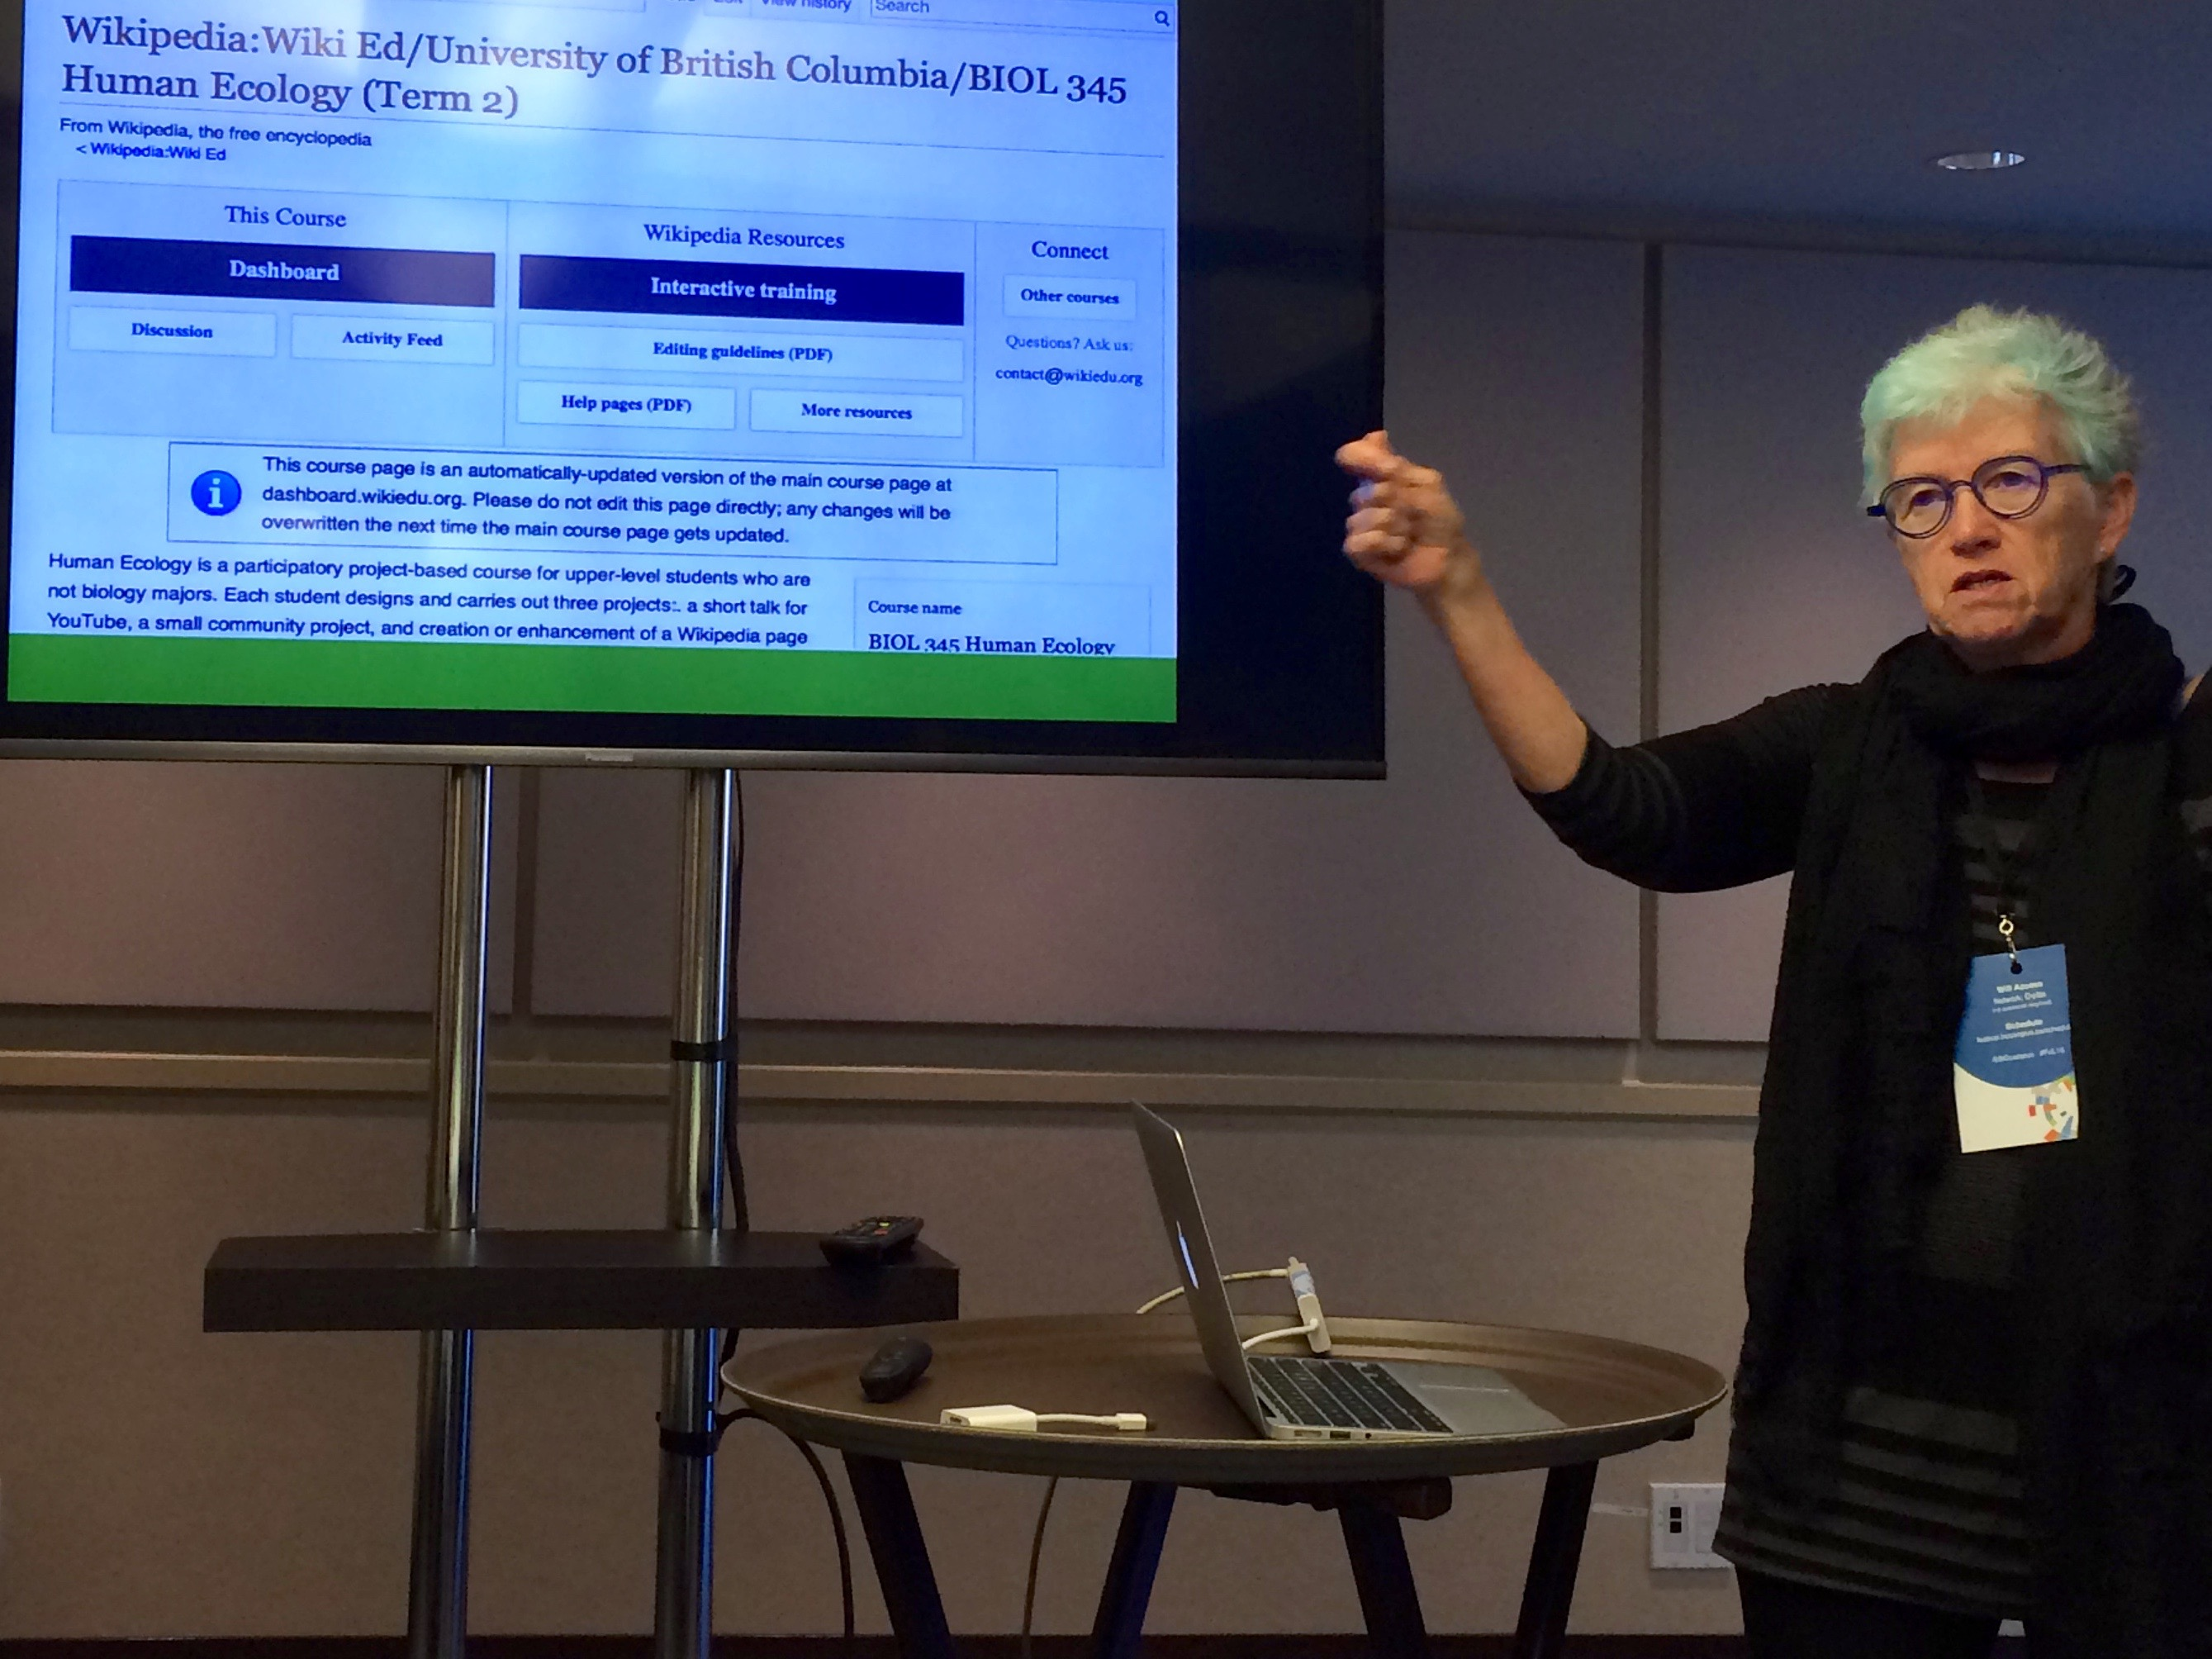 Dr. Rose Redfield leads a presentation on teaching with Wikipedia at the Festival of Learning in British Columbia.